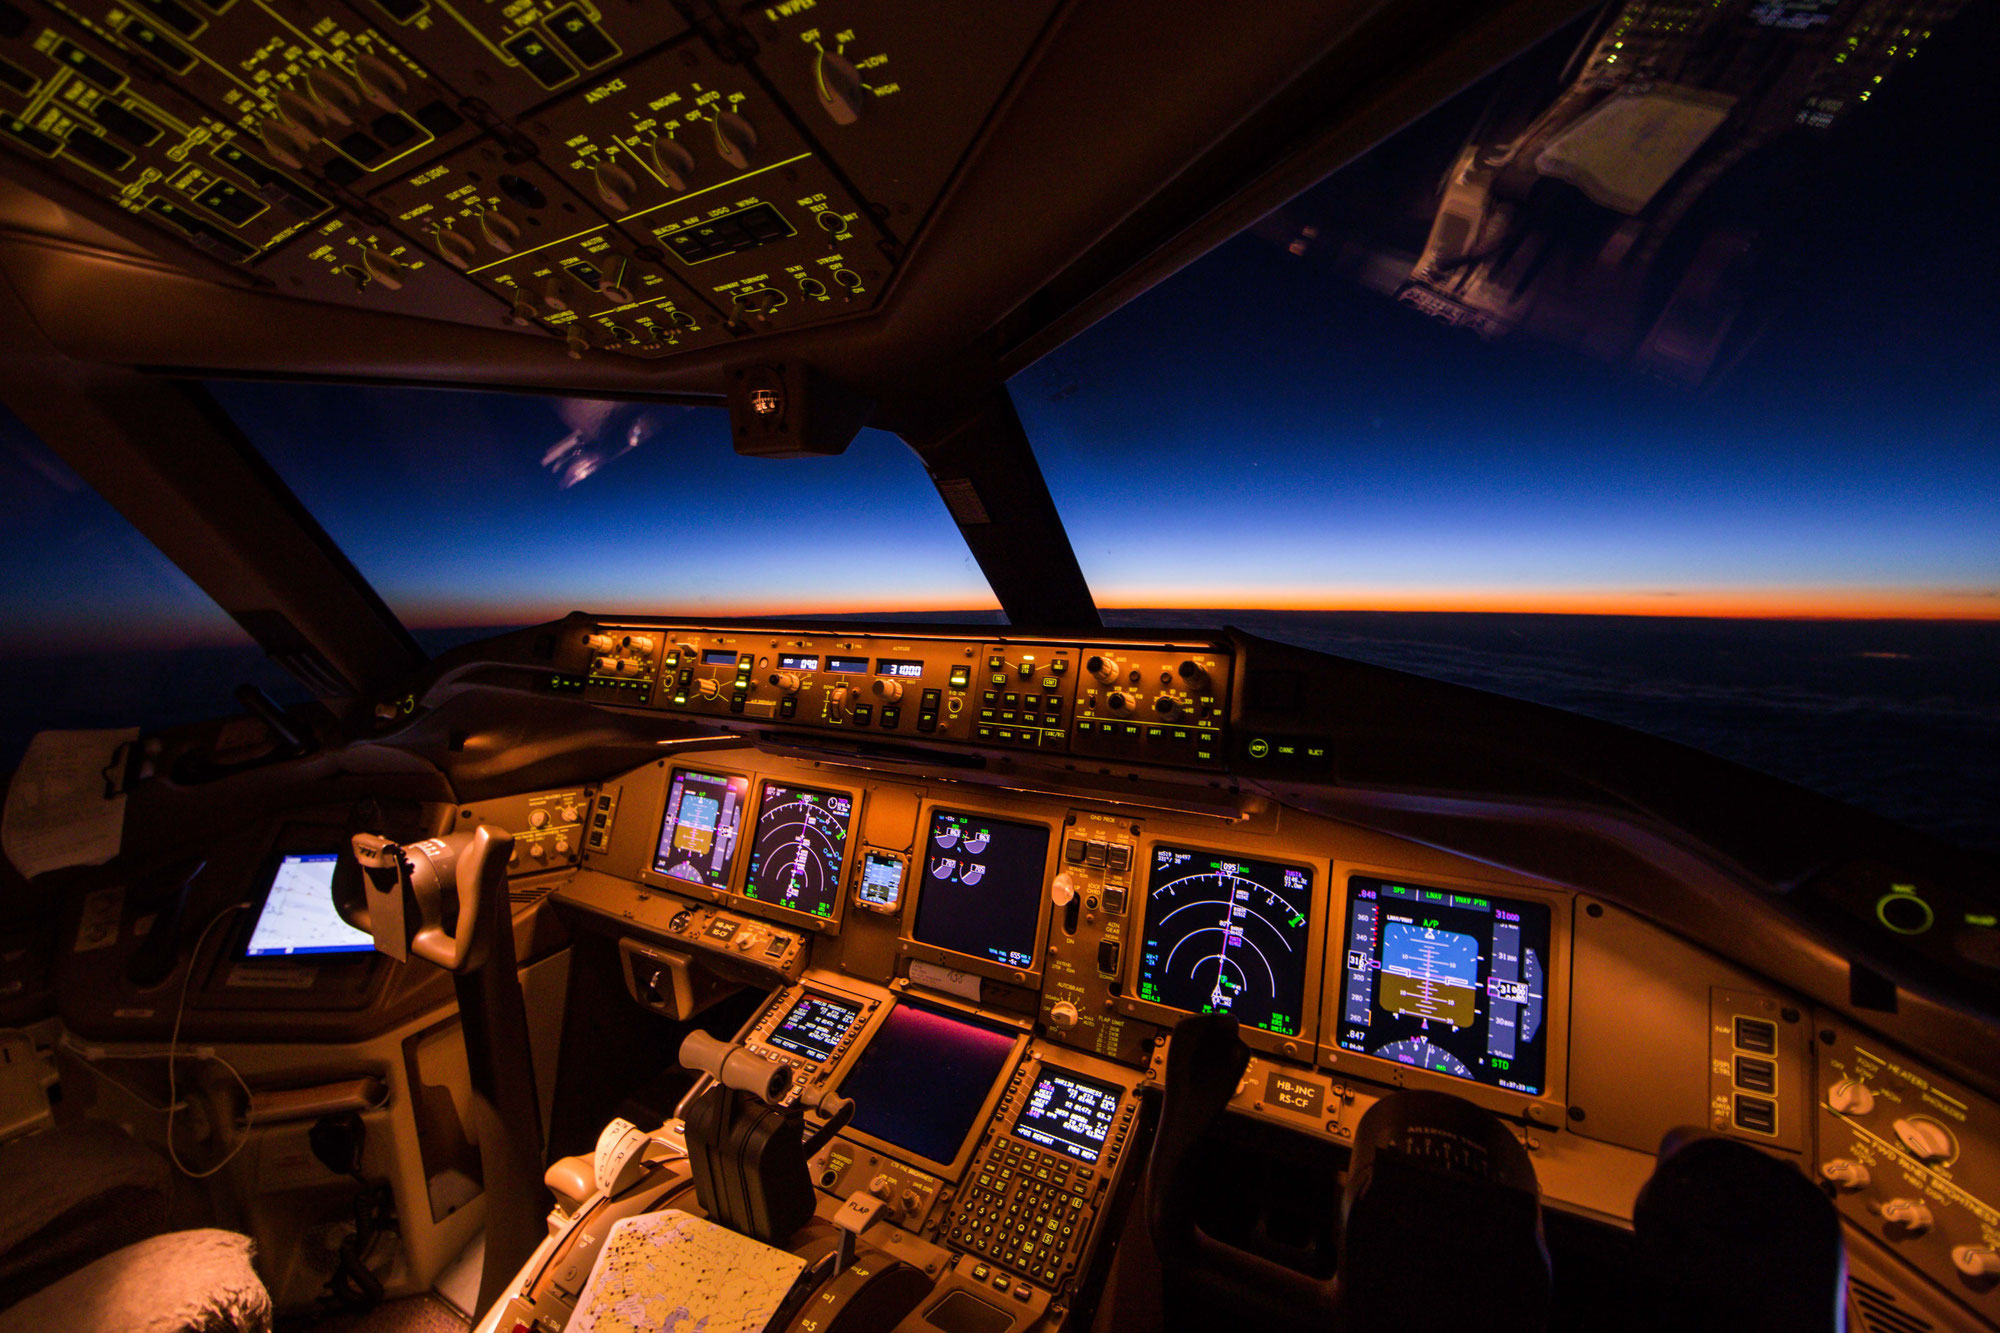 400 800 Hd Wallpaper Vuelo Nocturno The Magic Of Flying At Night Beyond The